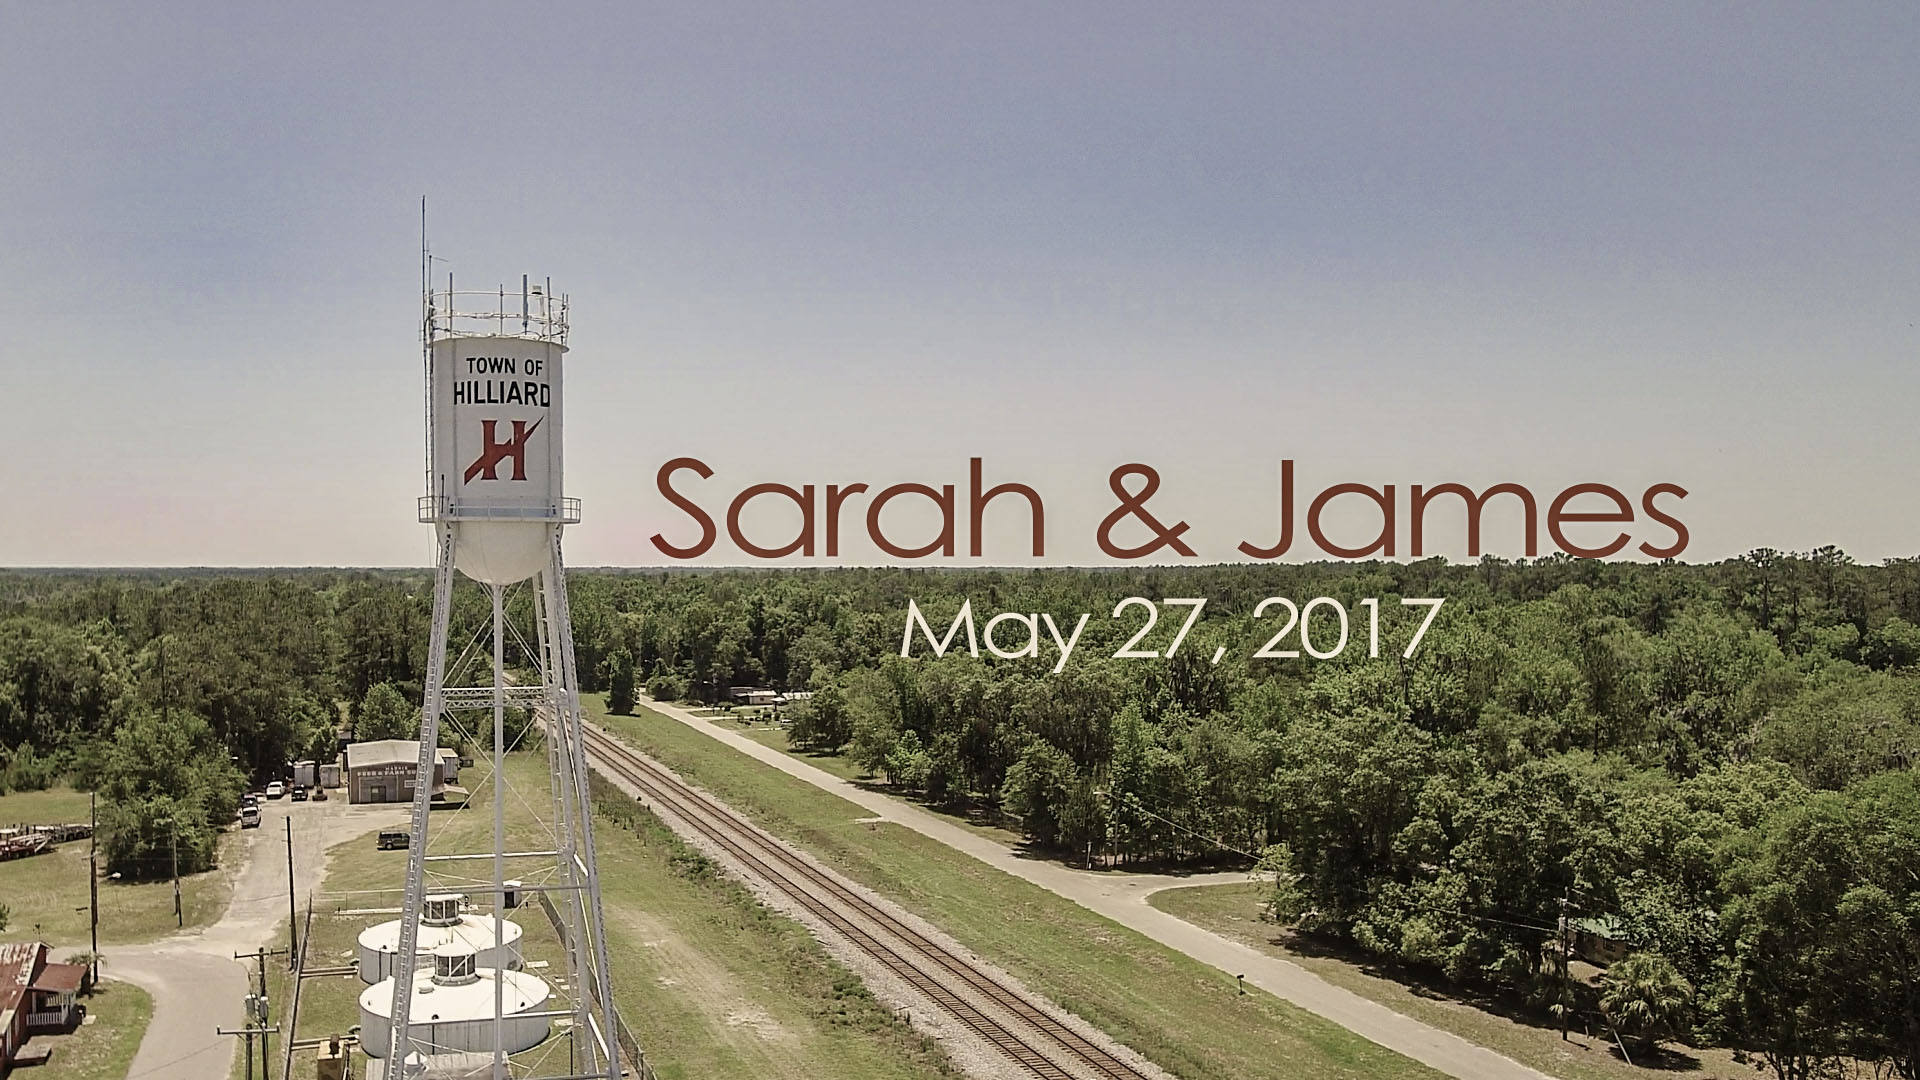 sarah & James - water tower